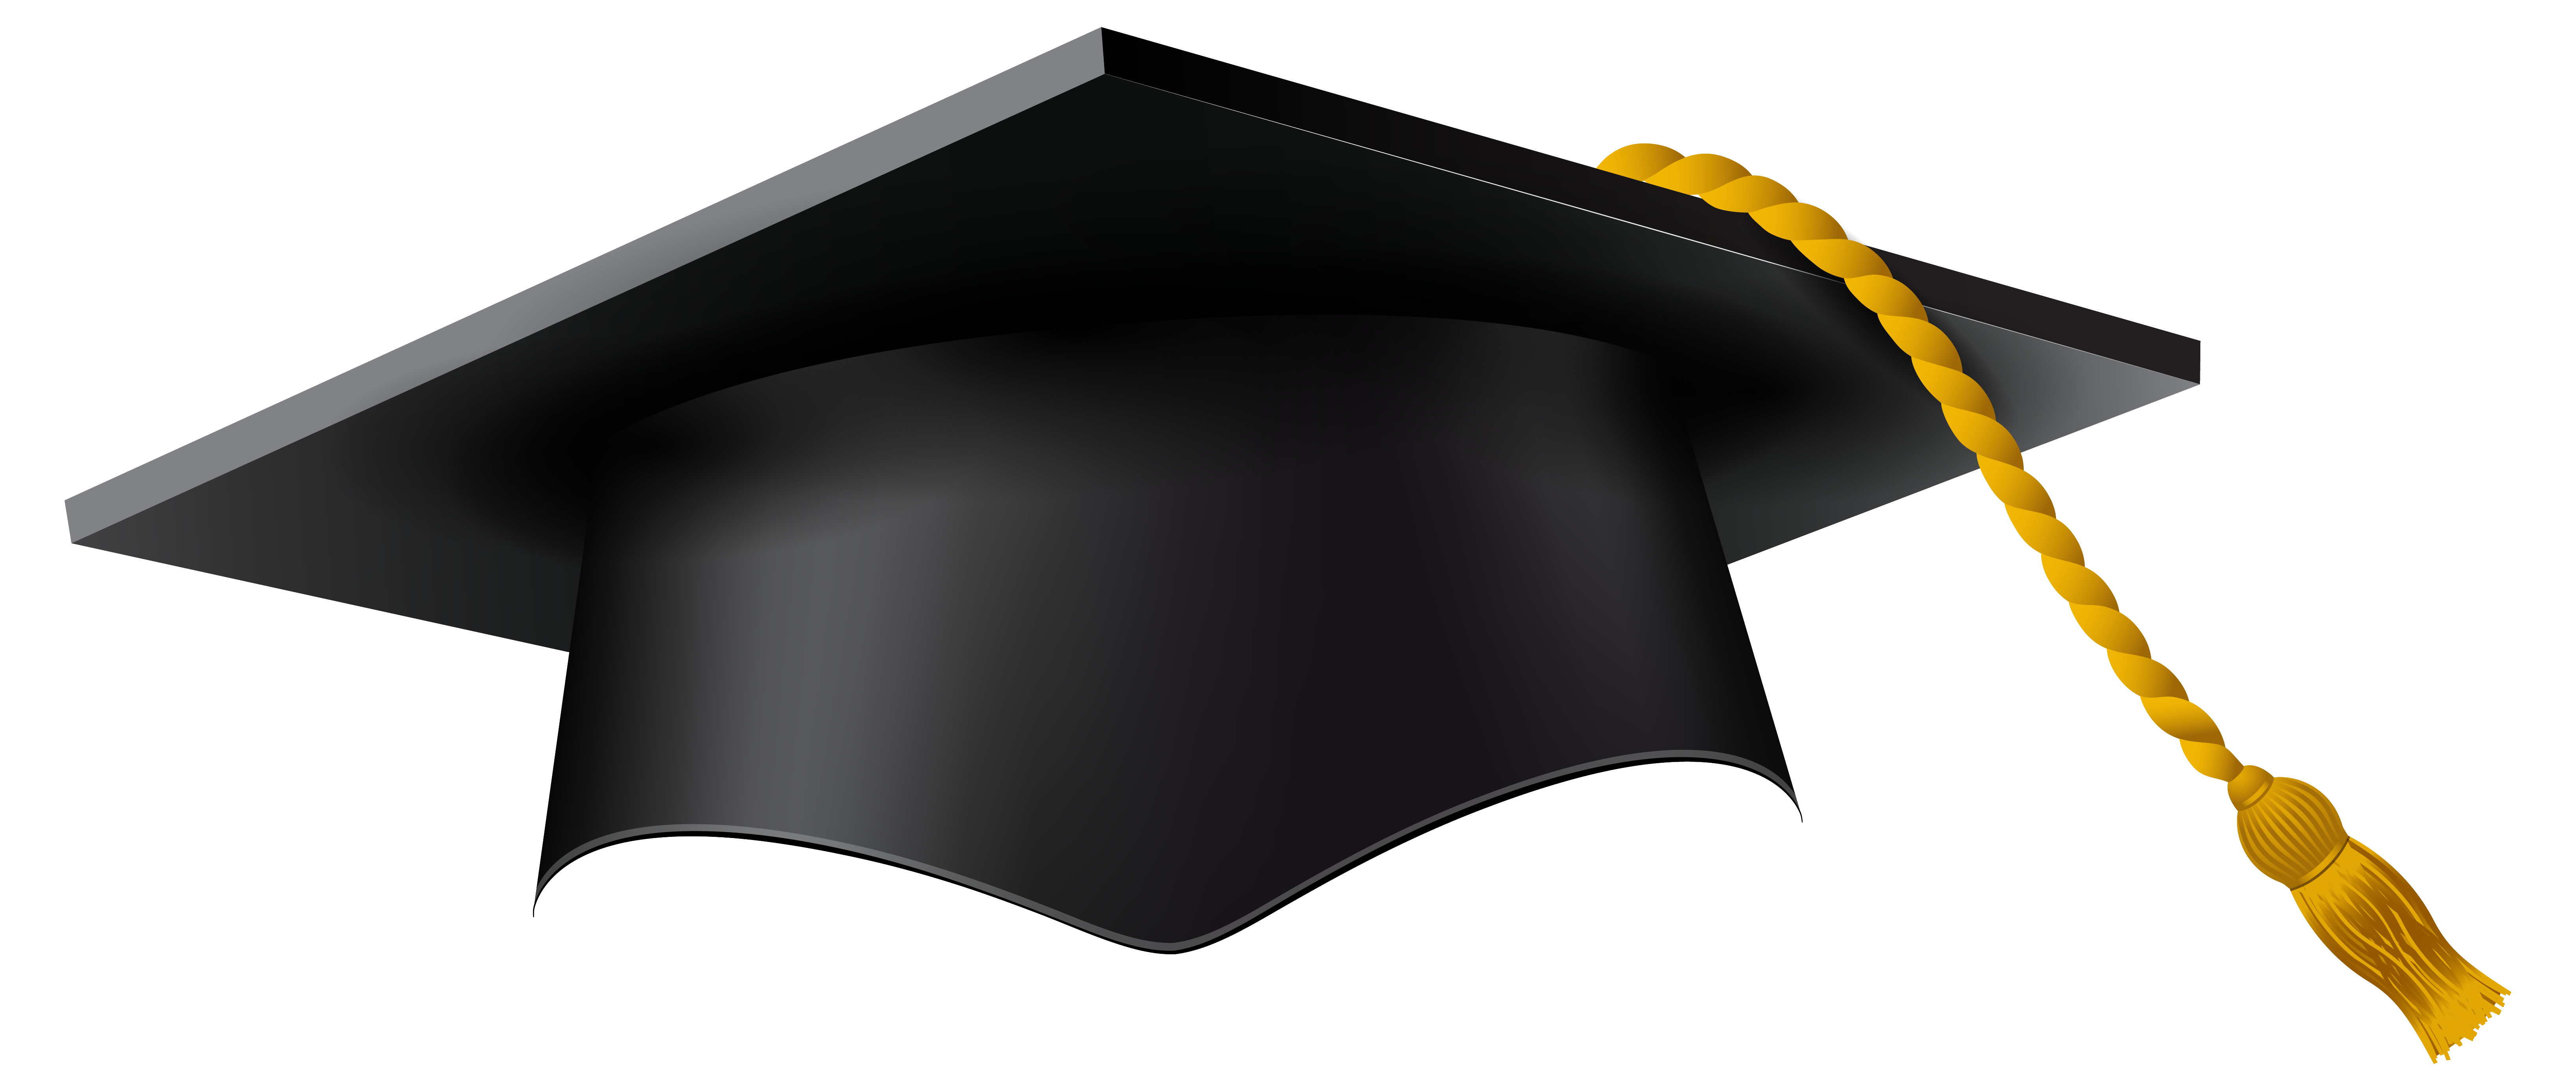 2018 graduation png. Edition greene county daily